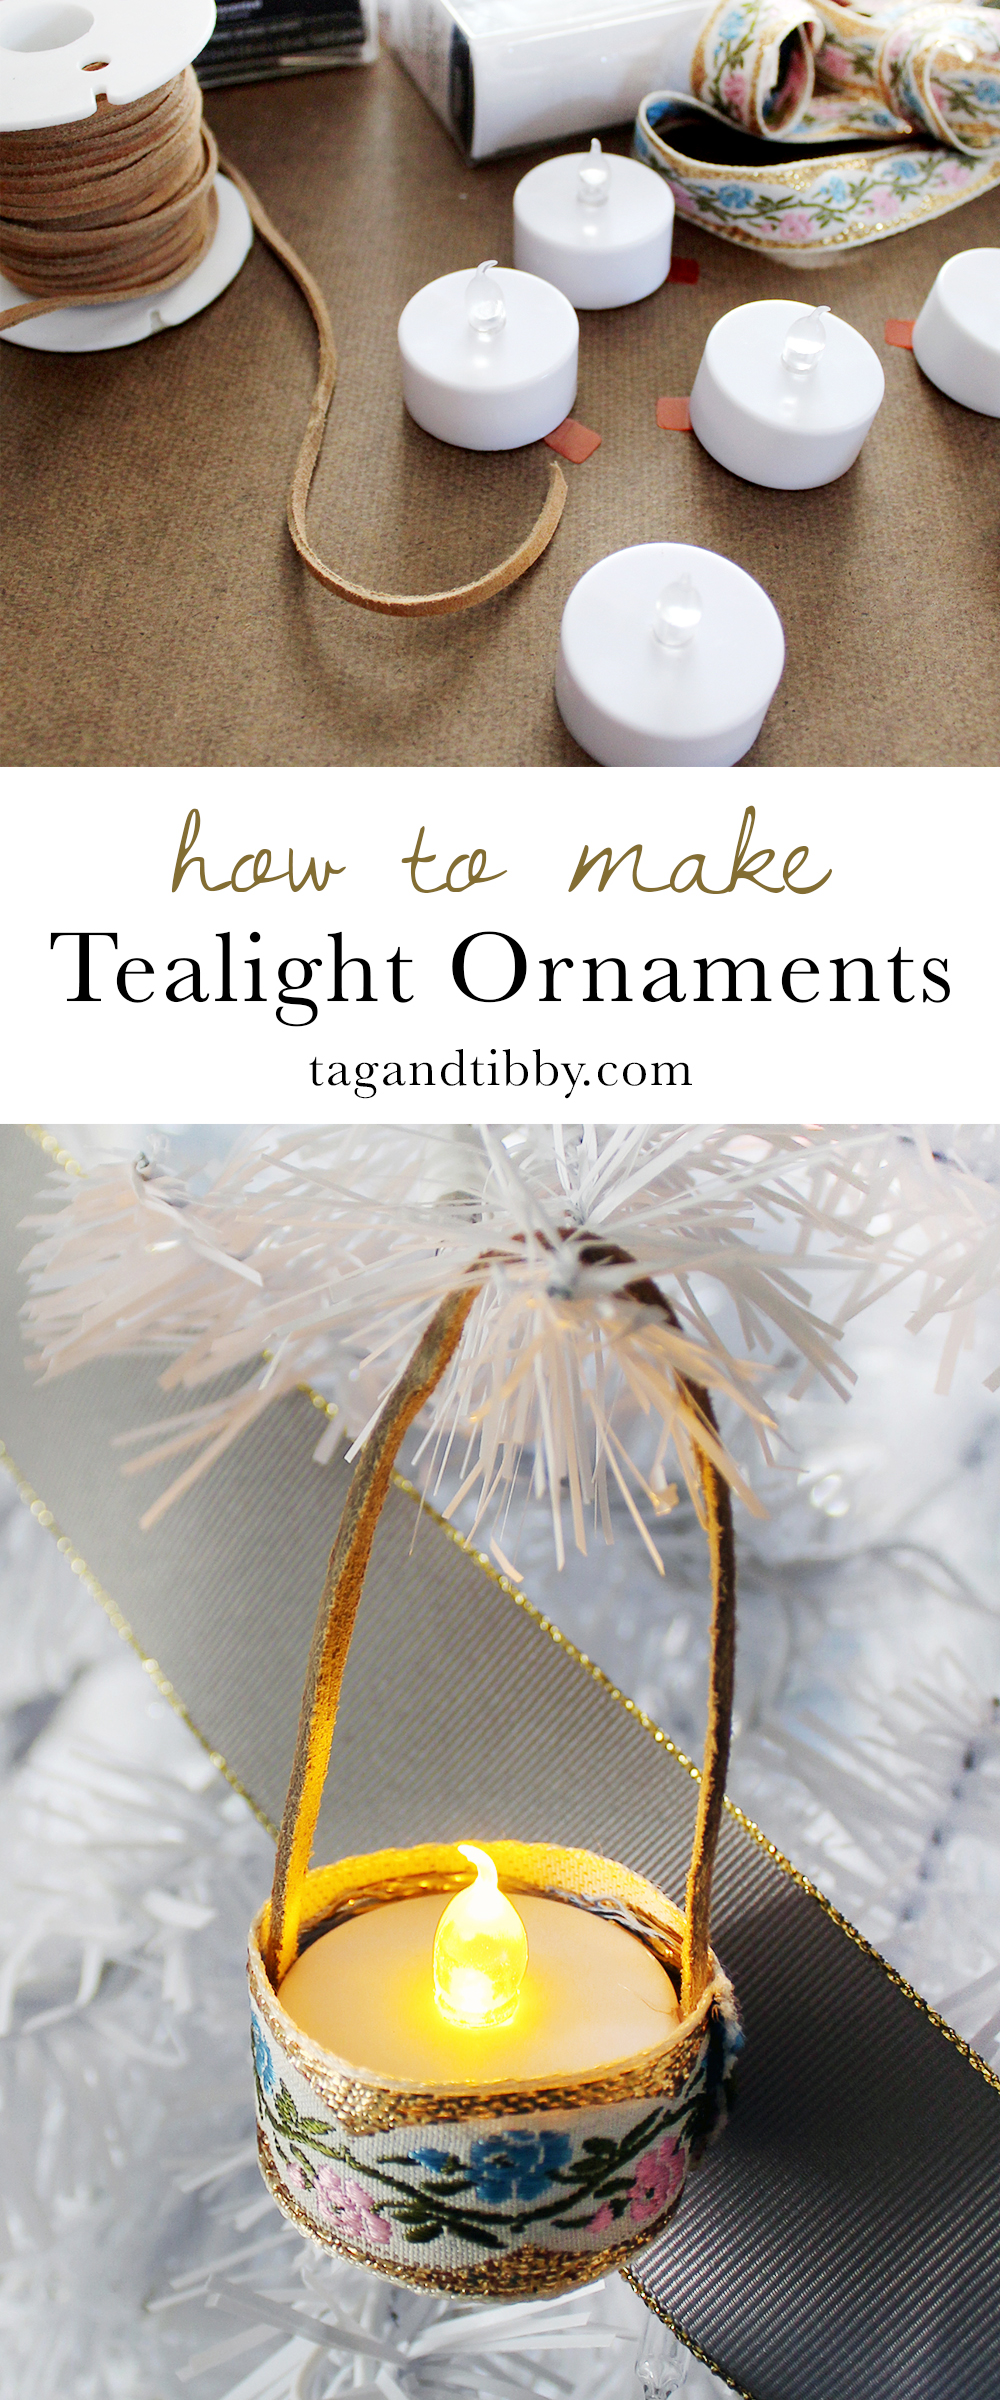 how to make your mini tealight ornaments with vintage ribbon, budget friendly and easy! #ChristmasDIY #Craft #HandmadChristmas #Ornament